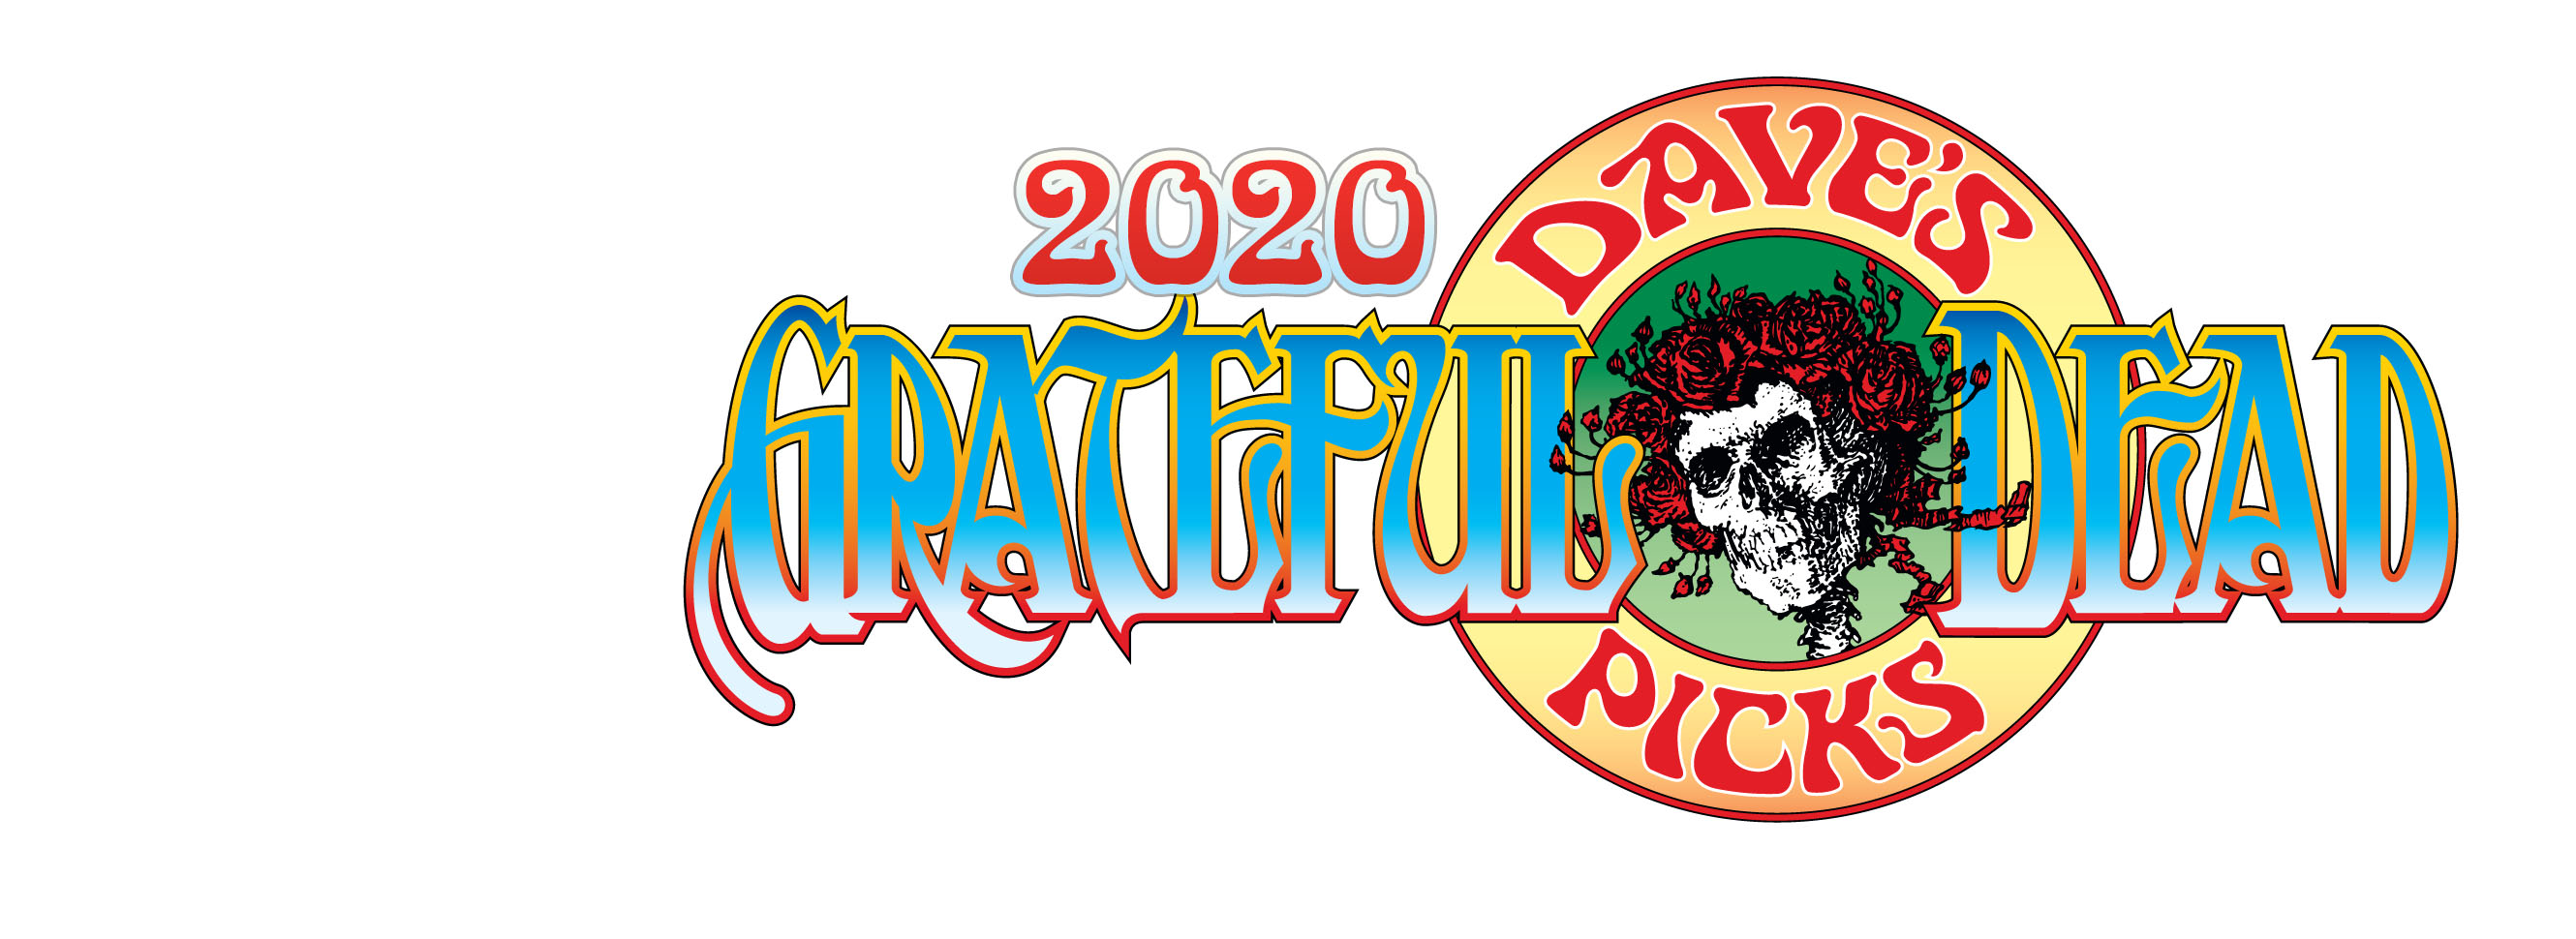 Dave's Picks Volume to feature Grateful Dead at Miami's Jai-Alai Fronton